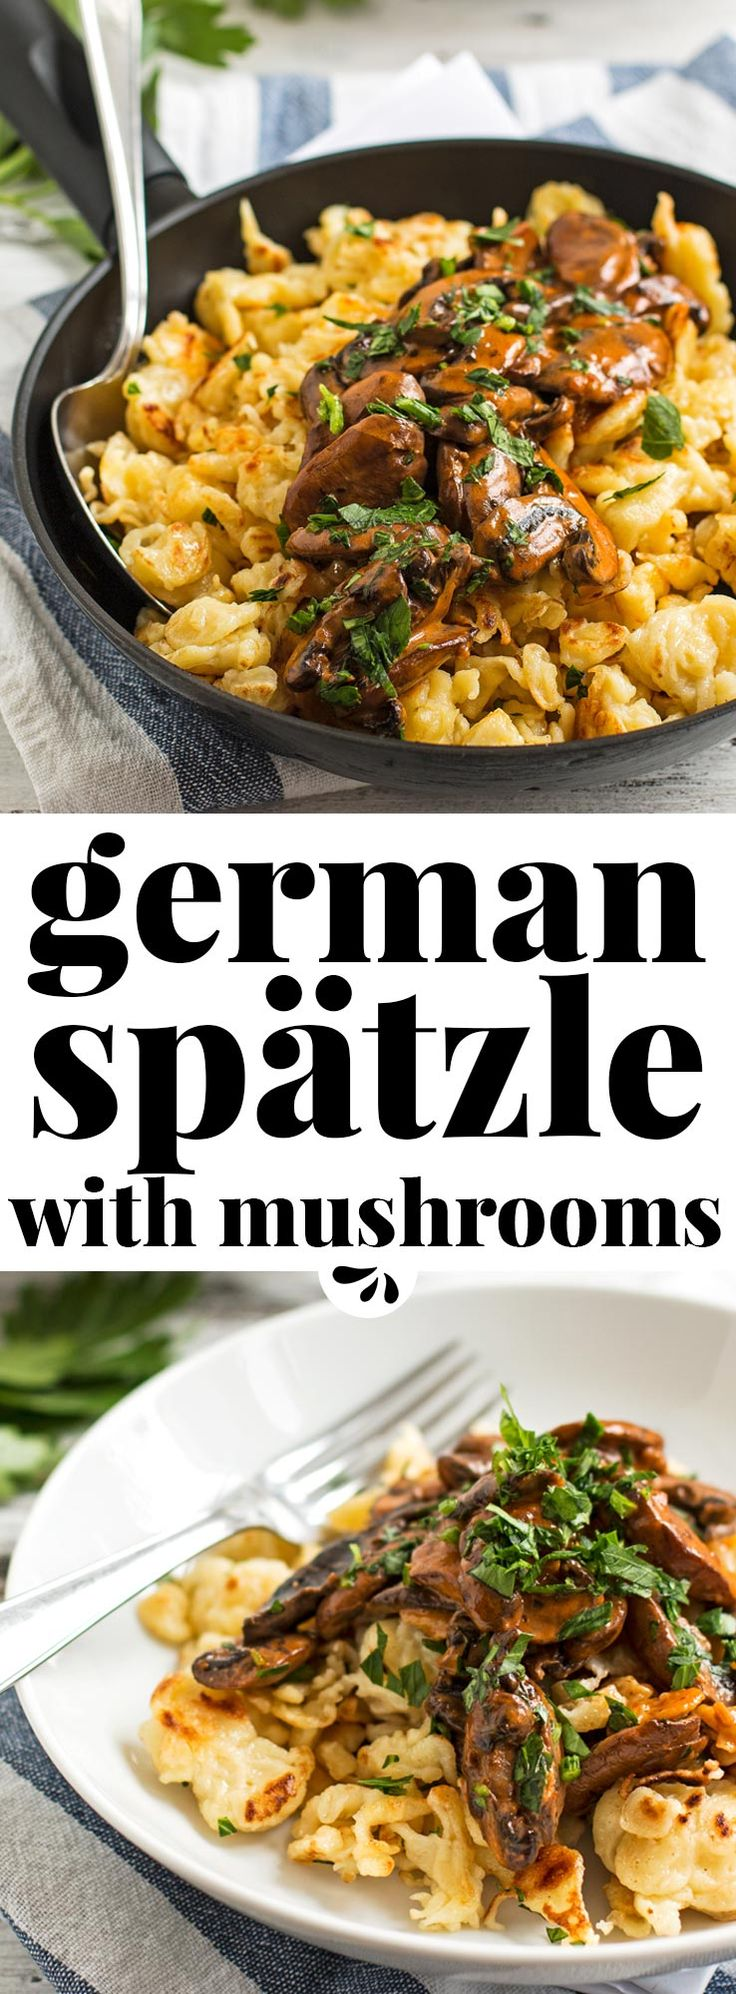 You don't need to travel to Munich to eat this traditional German dish called Jägerspätzle! This Bavarian classic is often served at the Oktoberfest and makes for a seriously exciting family dinner. They are small dumplings made from flour, eggs and milk. The sauce is a delicious rich Mushroom gravy, perfect for fall! My recipe was handed down to me by my Bavarian grandmother, so it's 100% authentic and tastes simply amazing. via @savorynothings